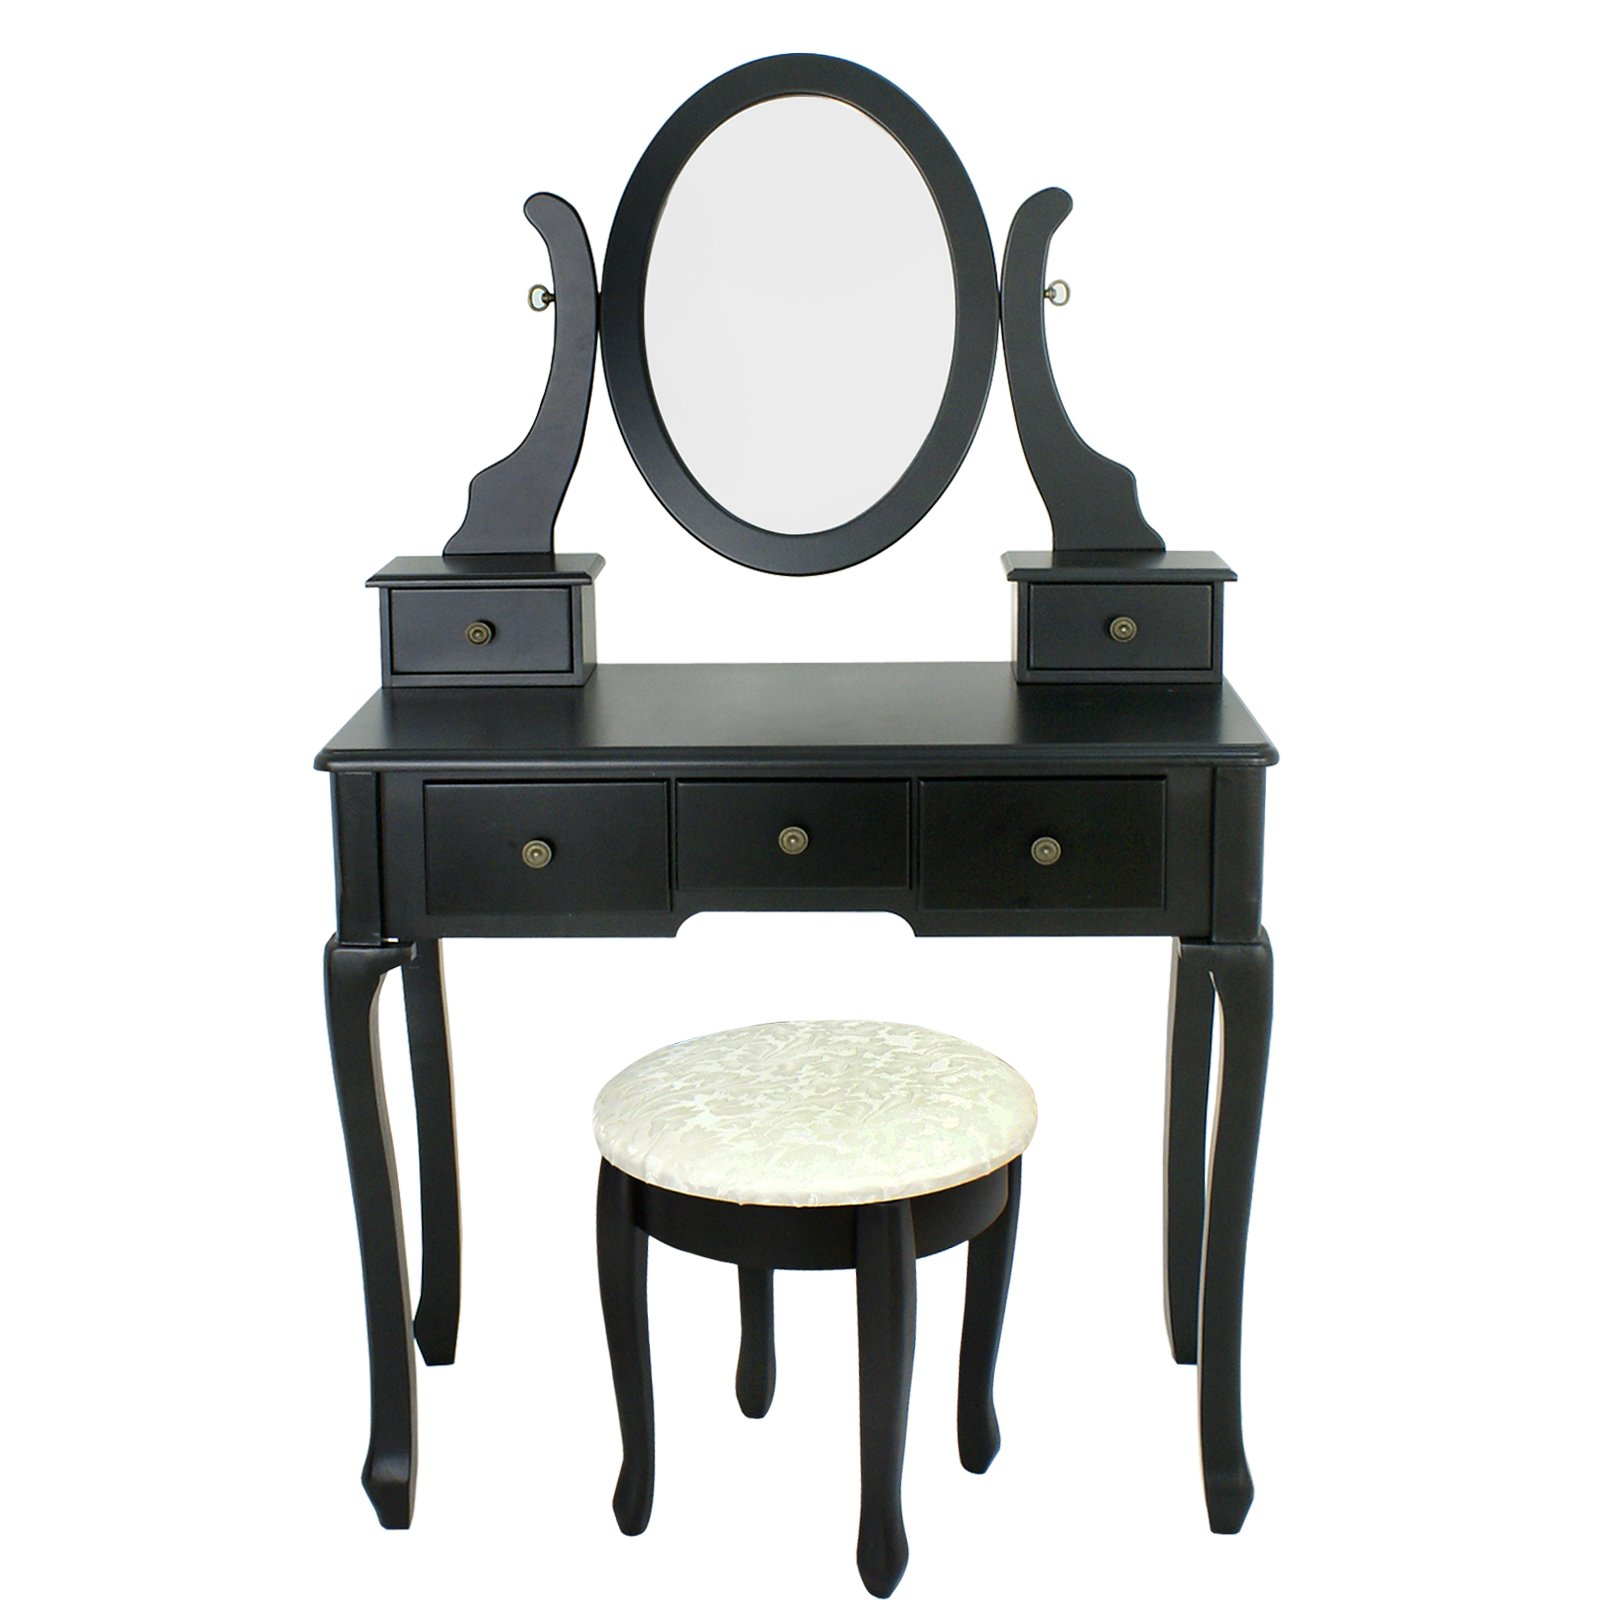 Vanity Table Set with Stool Dressing Table Set Solid Makeup Table with 5 Drawers and Mirror Black (black)